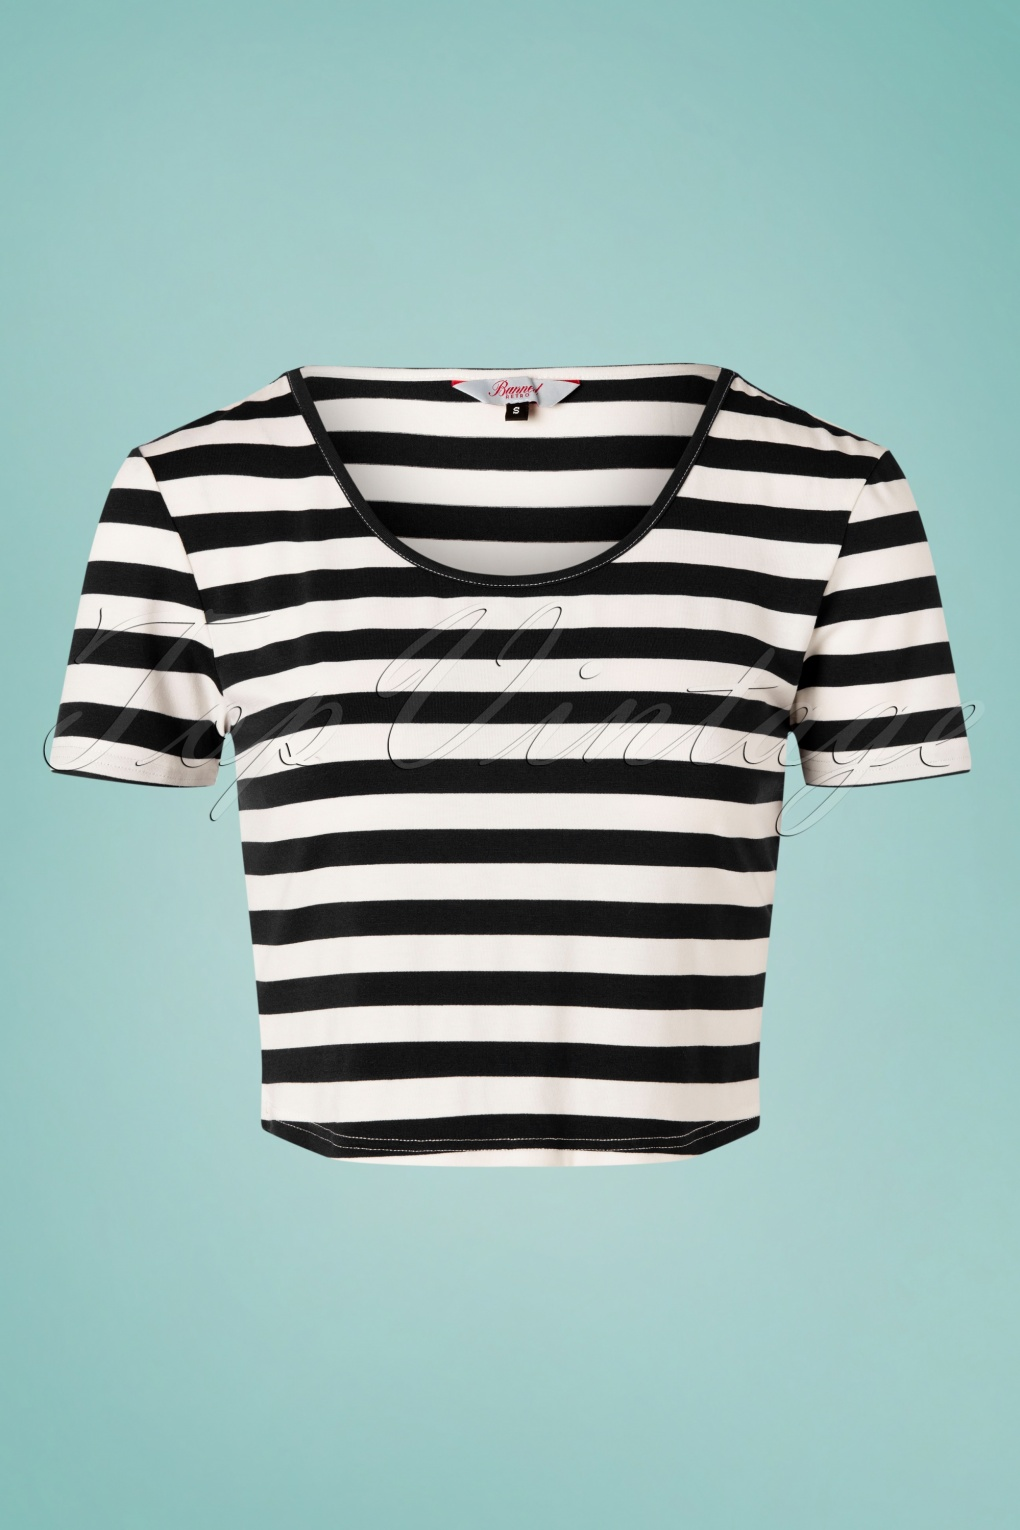 50s Shirts & Tops 50s Land Ahoy Crop T-Shirt in Black and White £24.95 AT vintagedancer.com